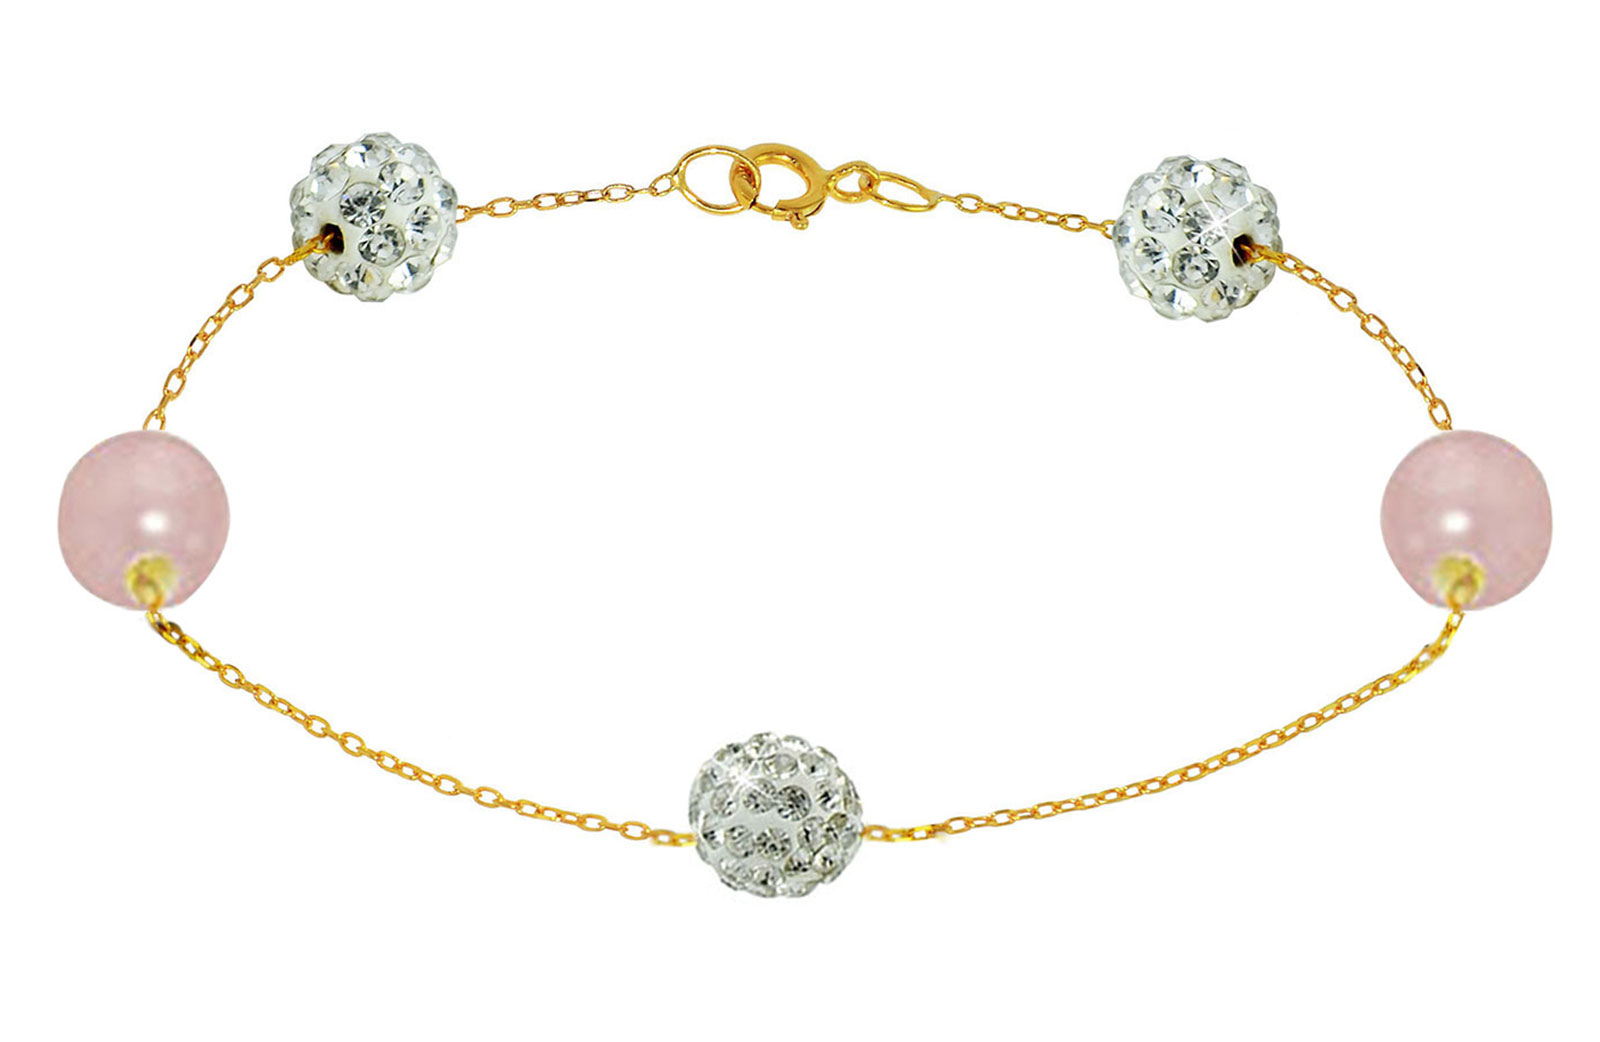 Vera Perla 18K Solid Gold Gradual Built-in 5-6mm Crystal Ball and Purple Pearls Bracelet